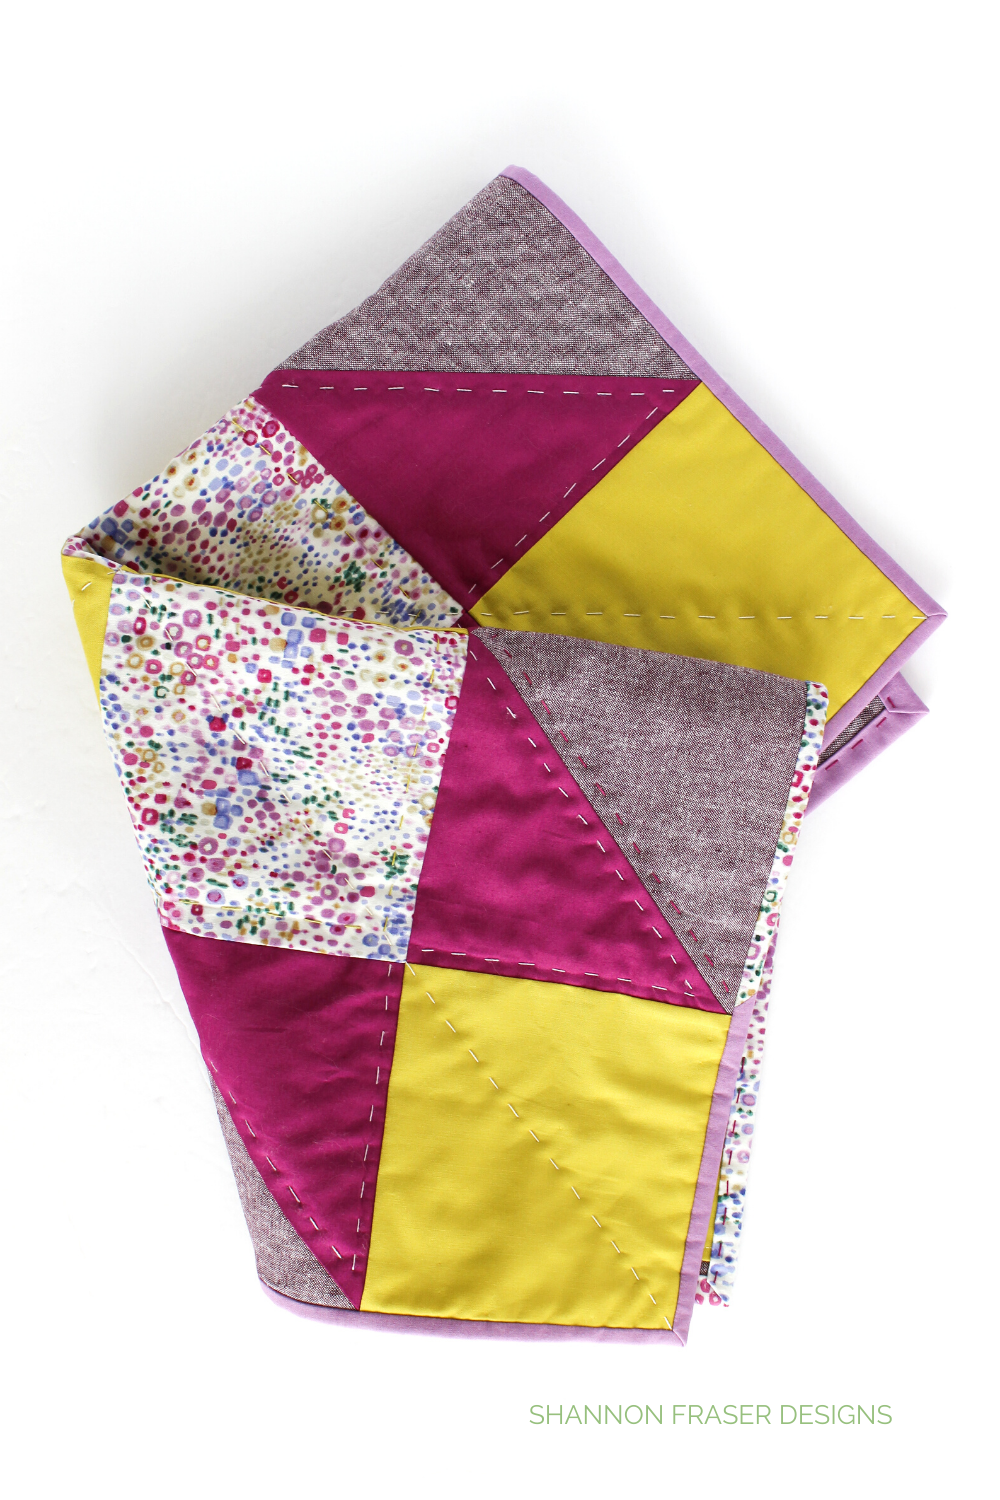 Purple, wasabi, eggplant and floral Indian Star quilted mini wall hanging folded in half | Quilt Big Book Tour | Shannon Fraser Designs #quiltedwallhanging